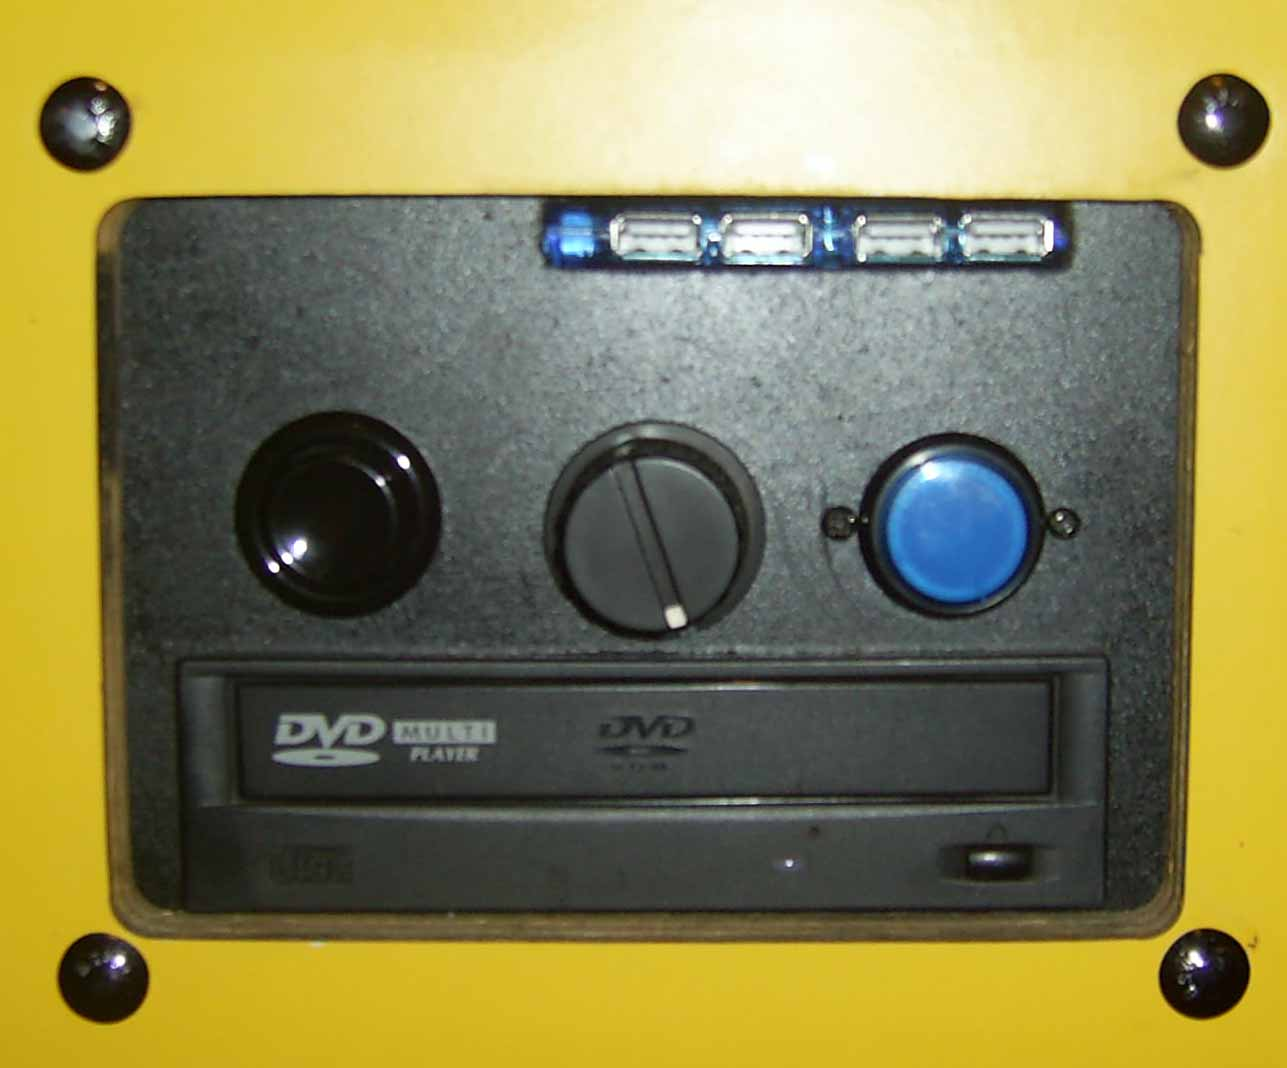 Volume Controls Andrew Scarvells Ramblings Clarostat Potentiometer Wiring Control Panel With Dvd Player